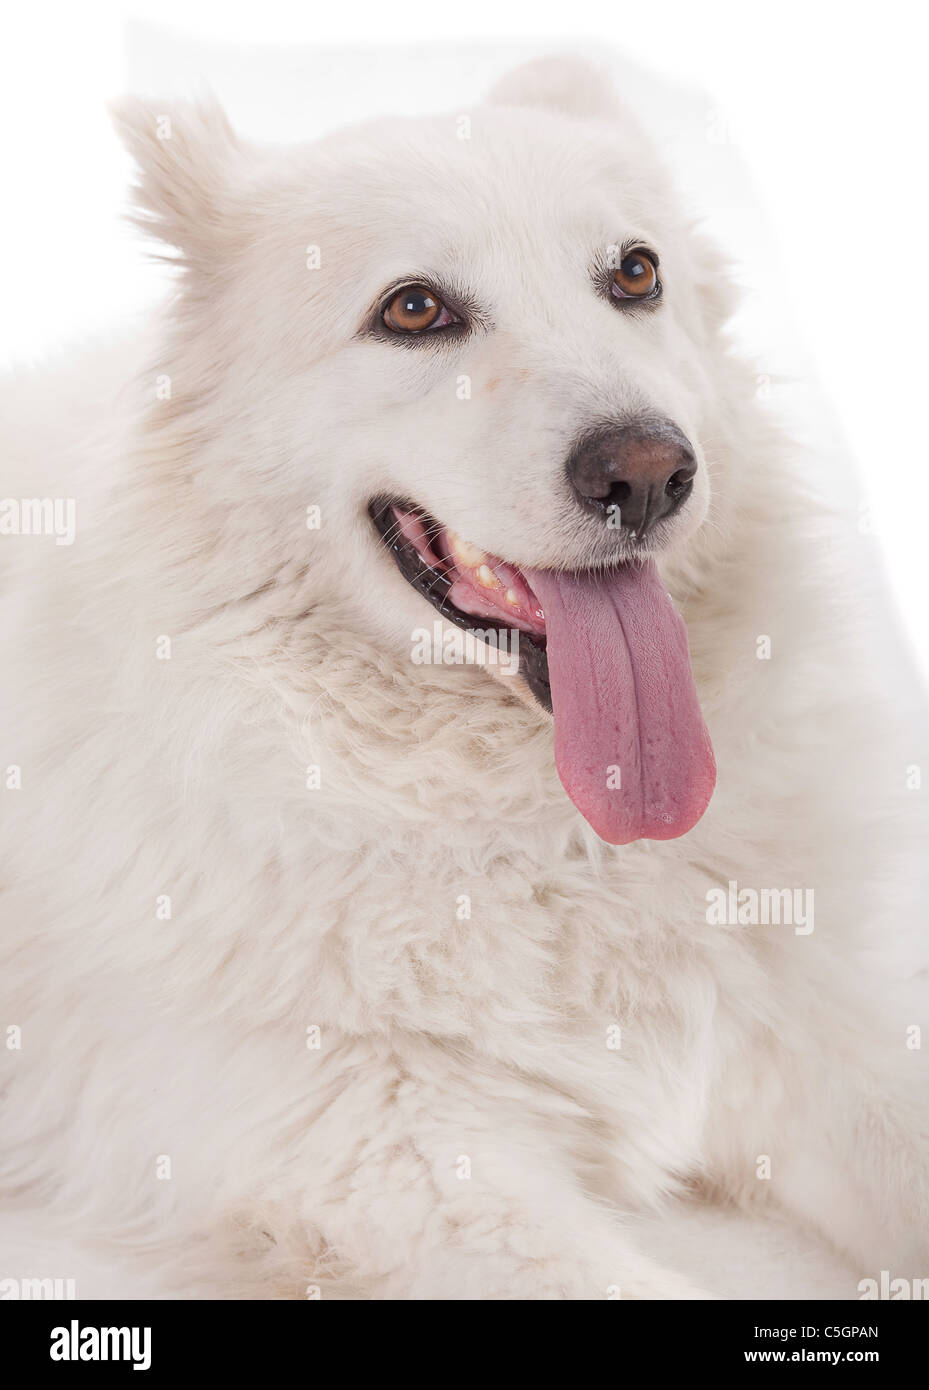 portrait of a beautiful purebred white dog severe sitting on a floor - Stock Image